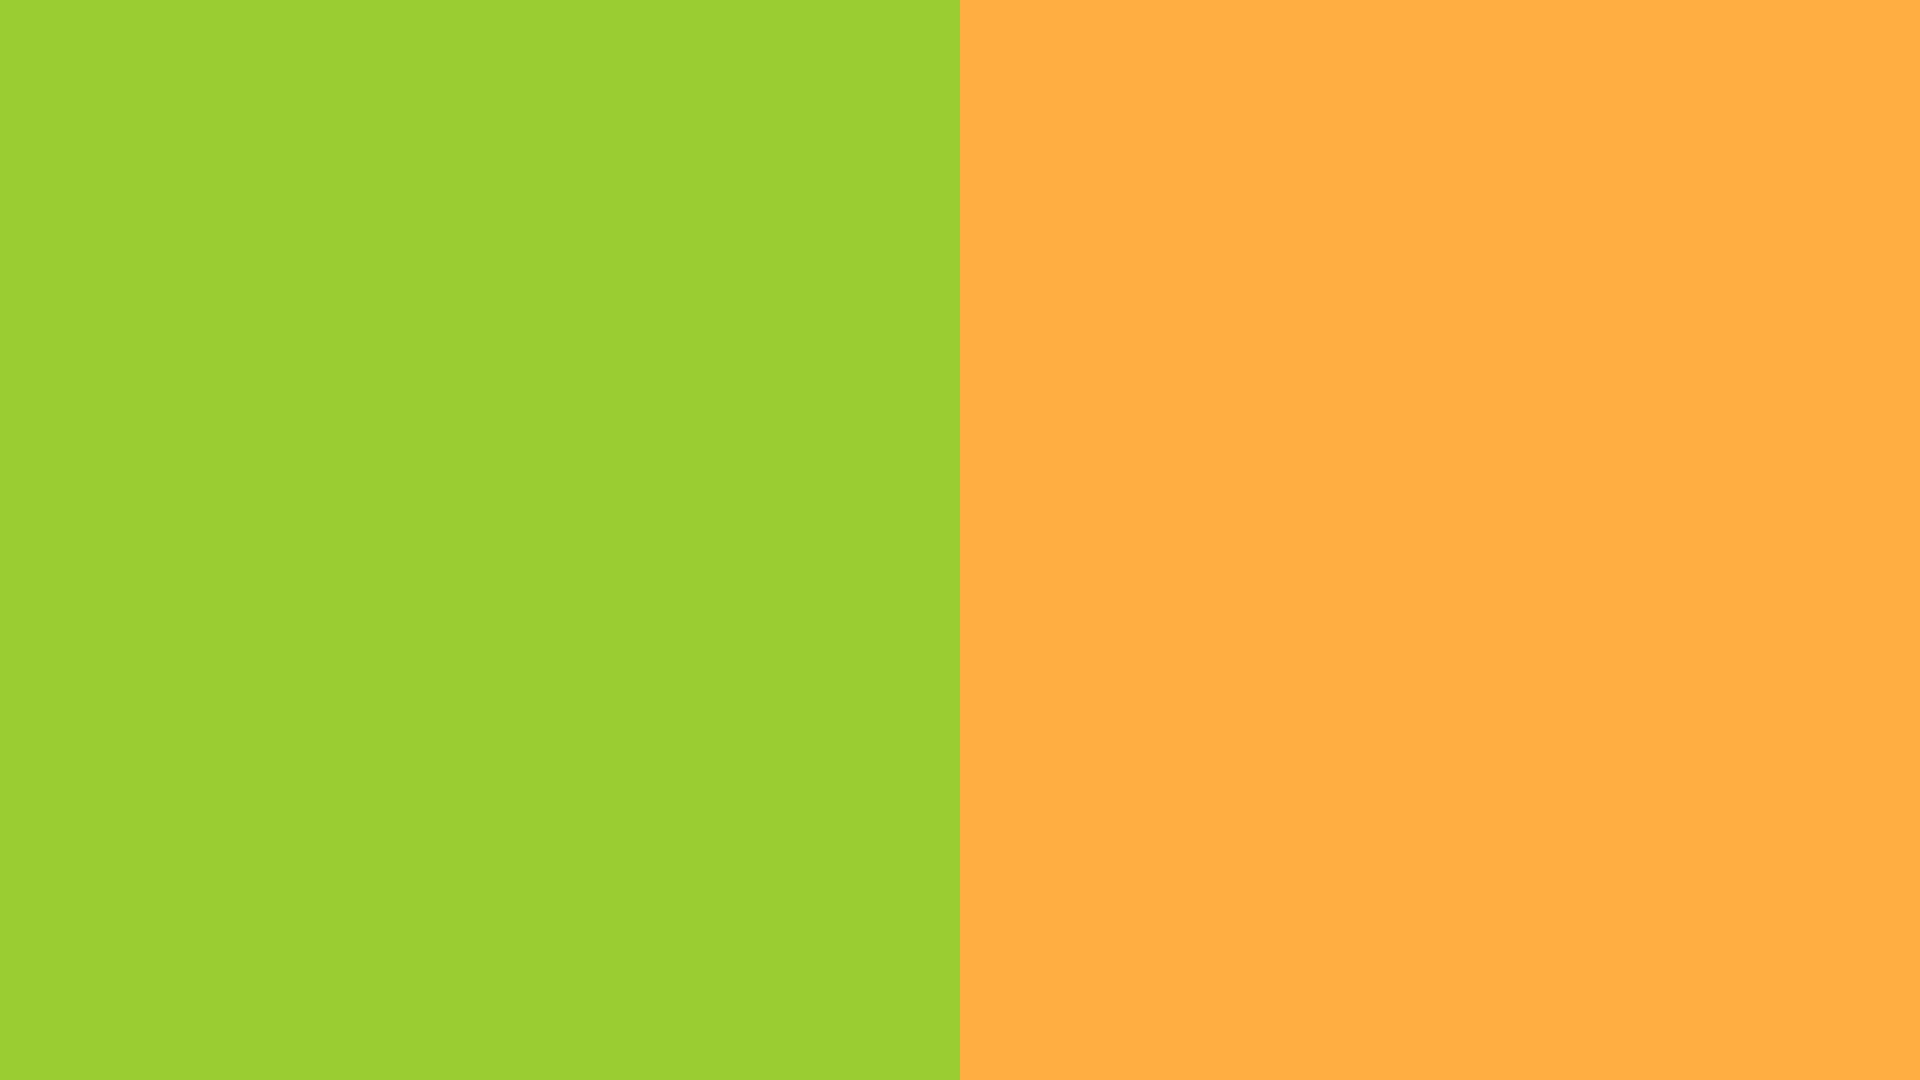 resolution Yellow green and Yellow Orange solid two color background 1920x1080